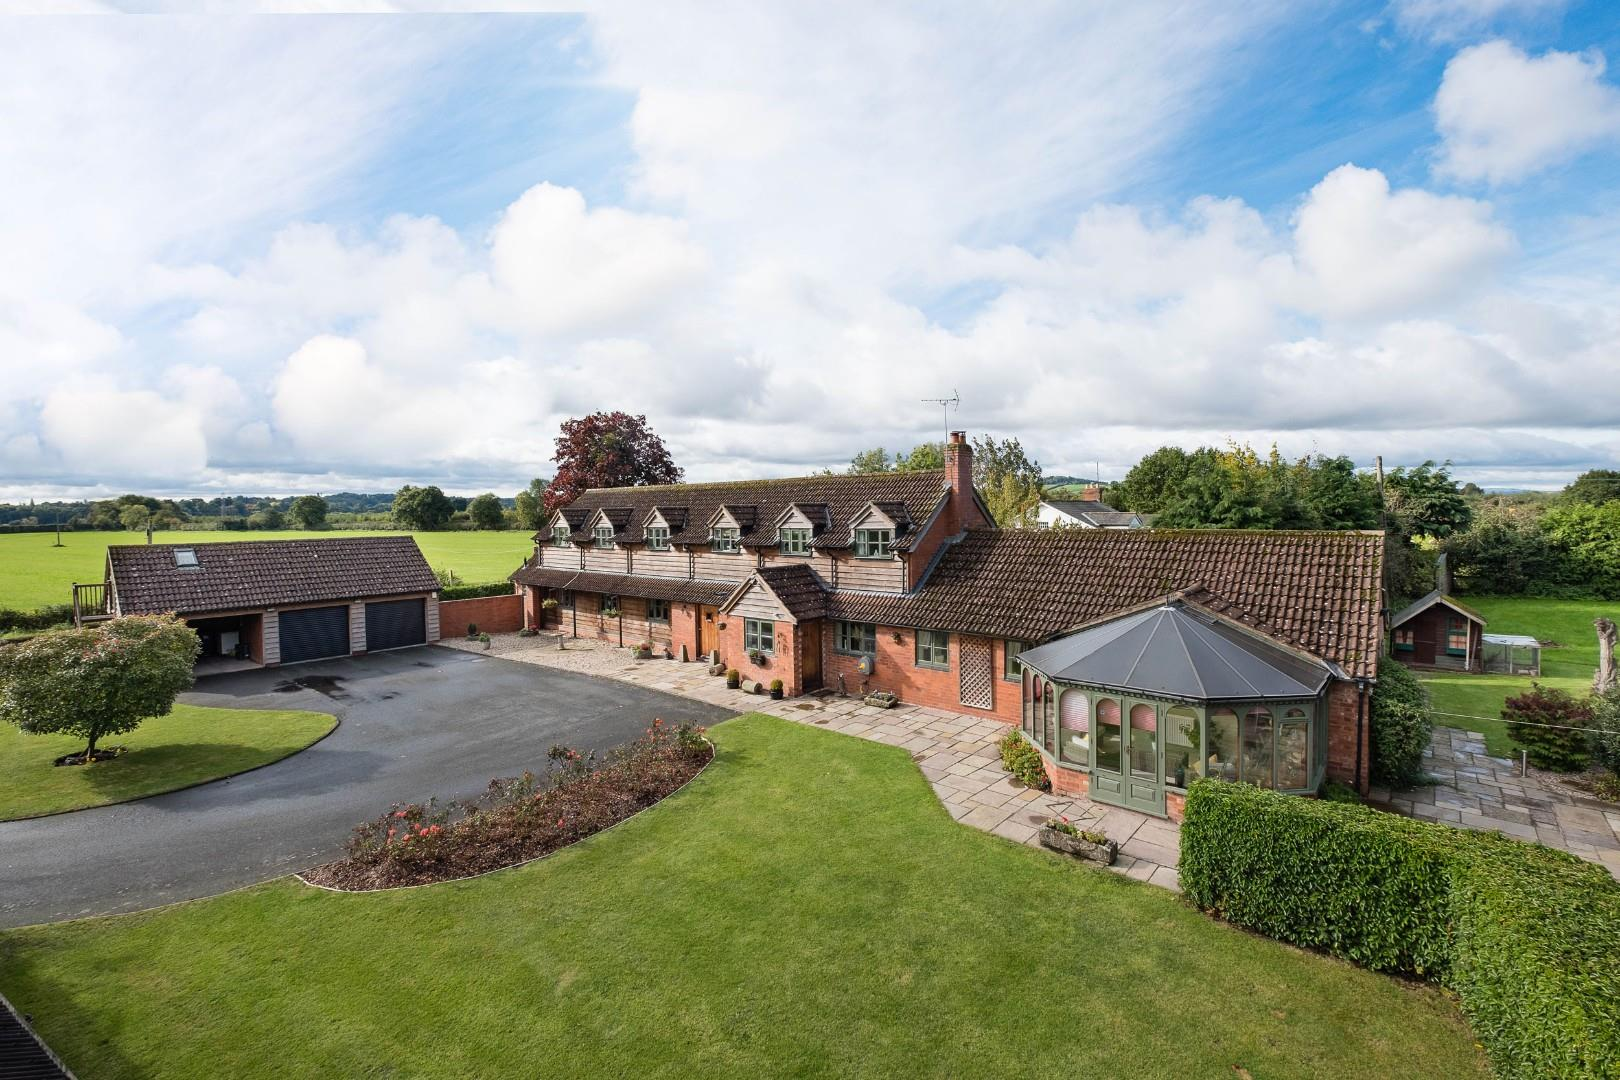 Hampton Bishop, Herefordshire - 2 acres